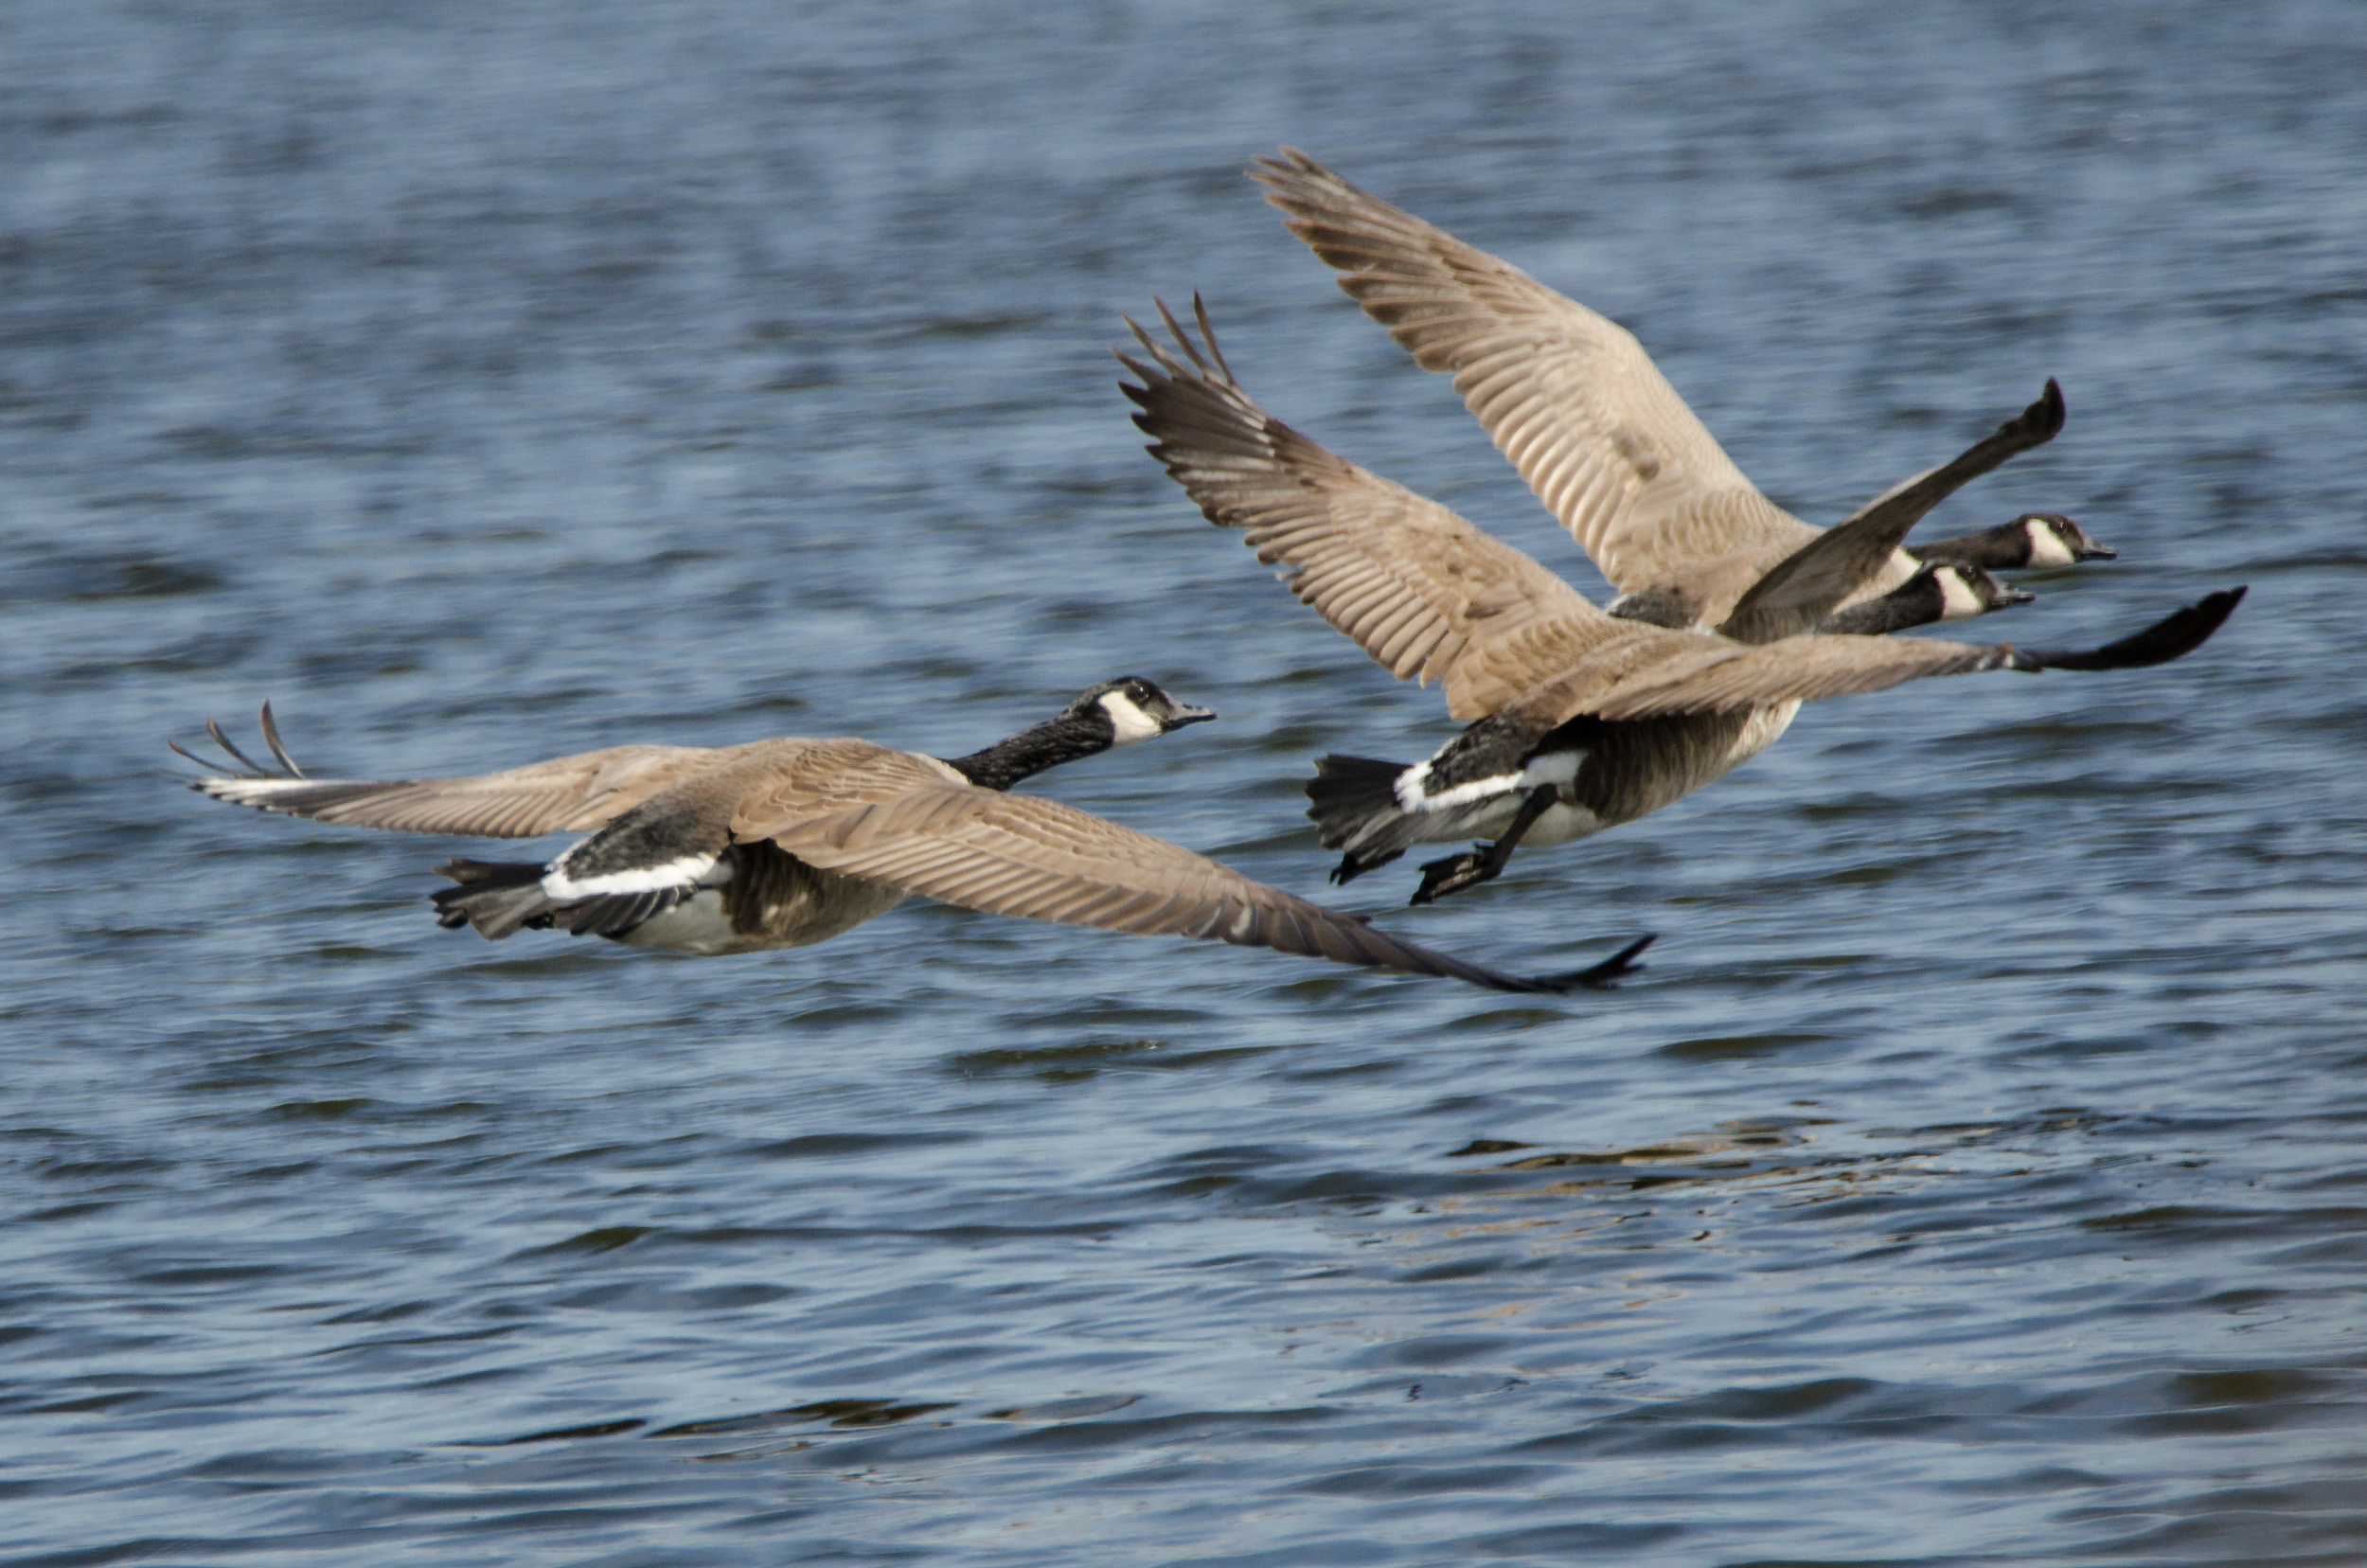 Canada Geese in Flight  Nikon D7000 ISO 400 600mm f/8.0 1/1600 sec.